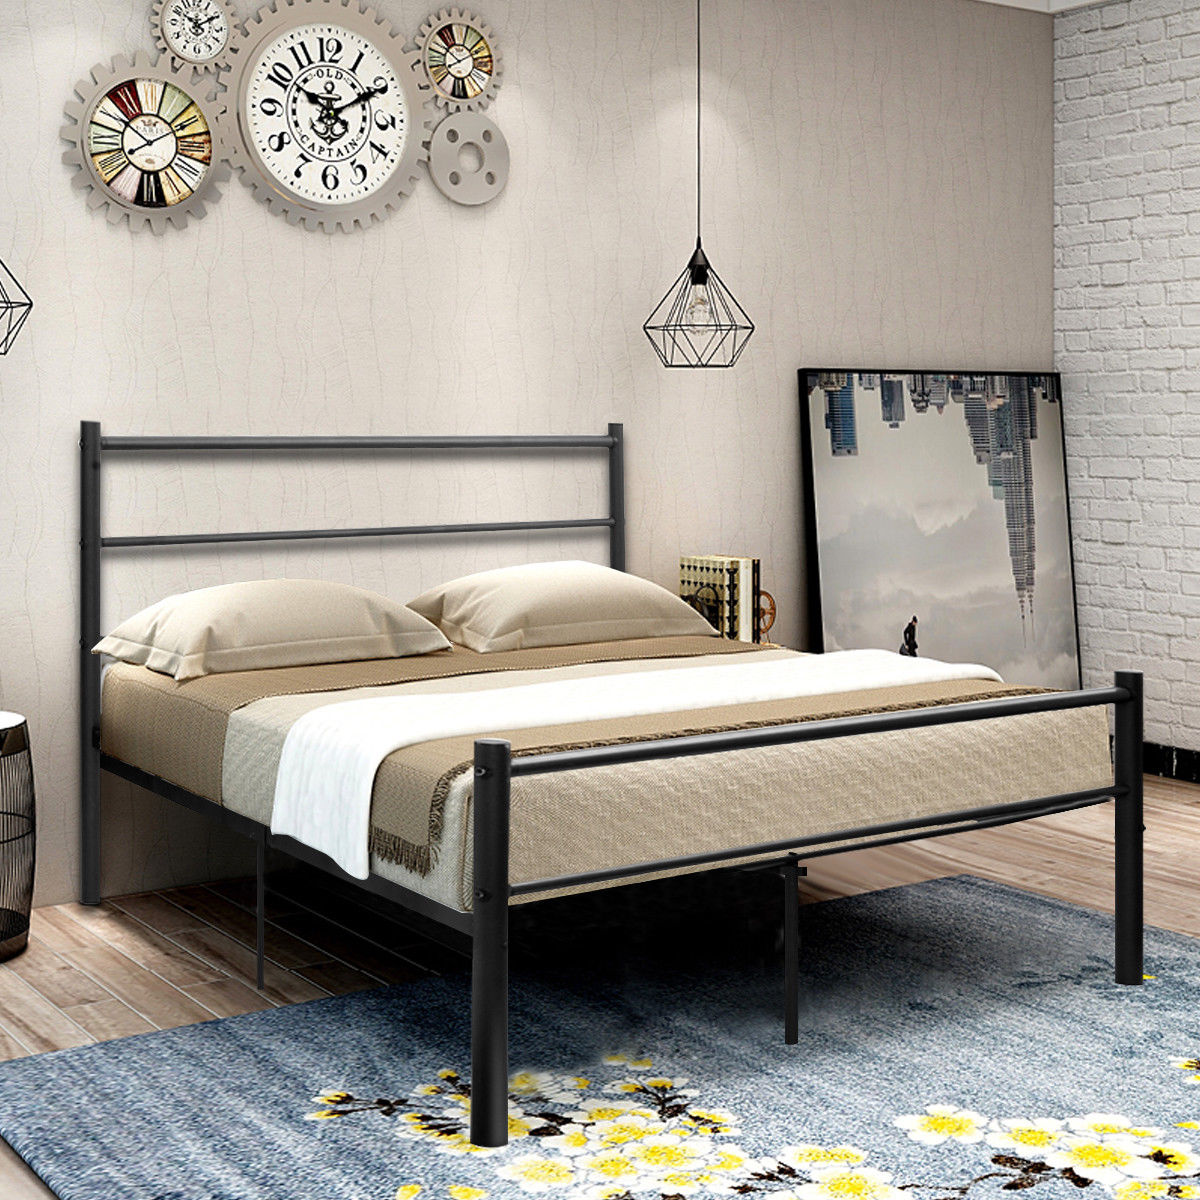 Costway Black Full Size Metal Bed Frame Platform Headboard 10 Legs Furniture by Costway